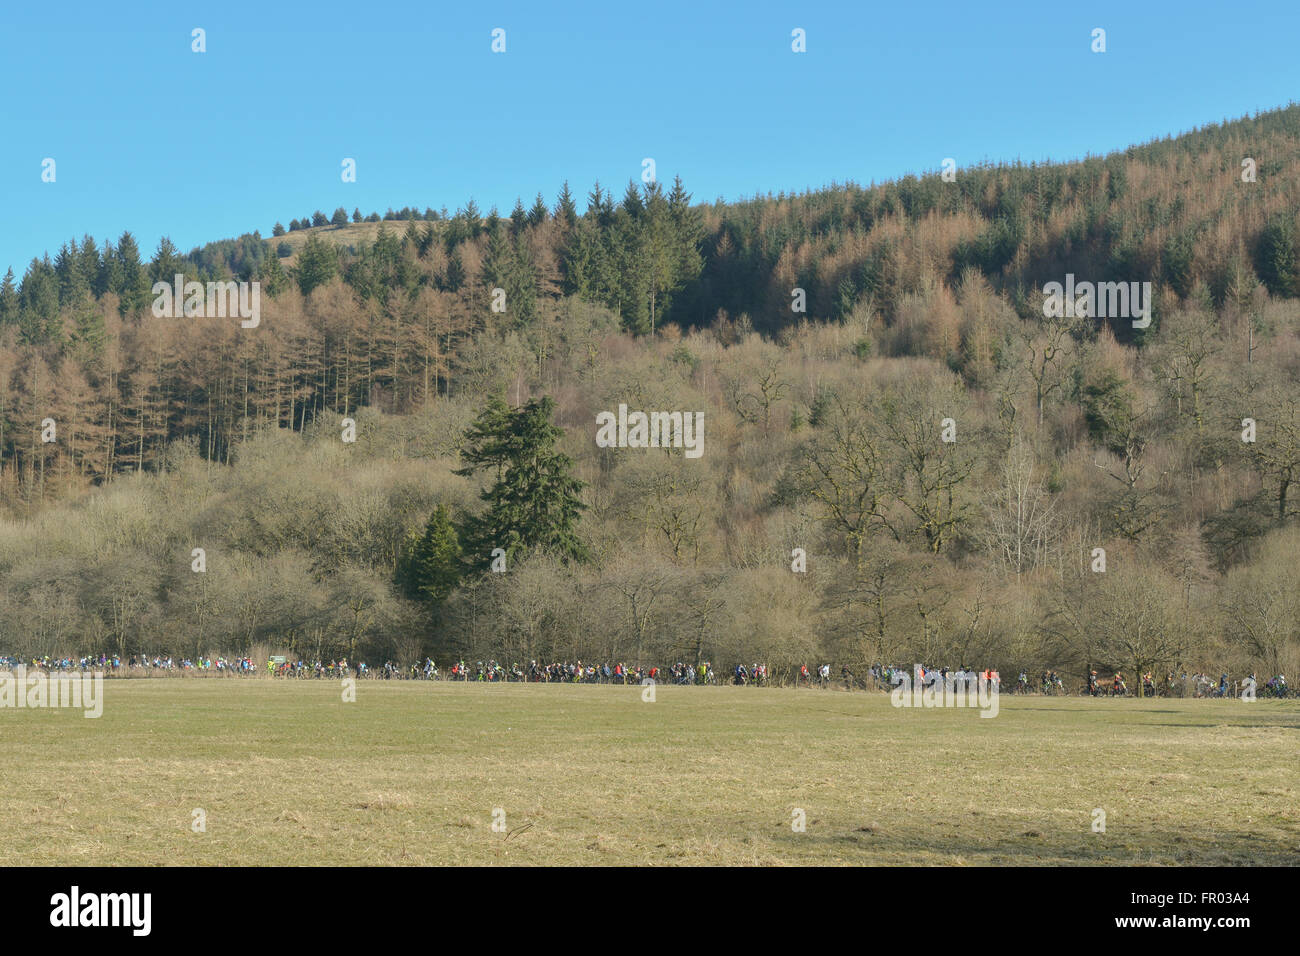 Ae Forest, Dumfries, Scotland - 20 March 2016: UK weather - downhill mountainbike competitors queue for uplift to - Stock Image